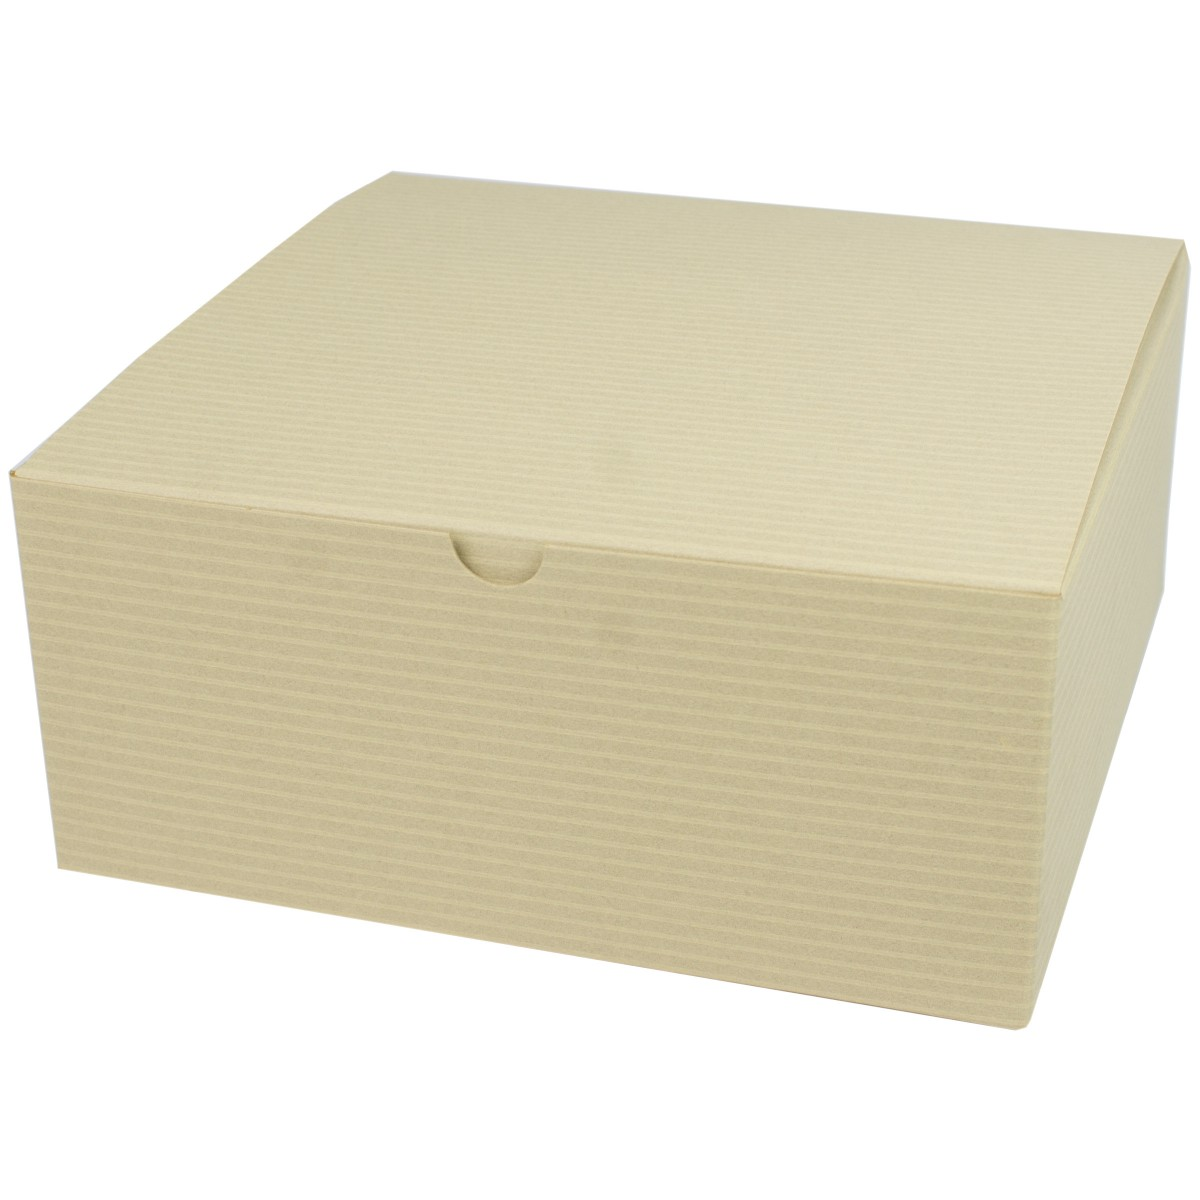 8 X 8 X 3 5 Oatmeal Tinted Tuck Top Gift Boxes